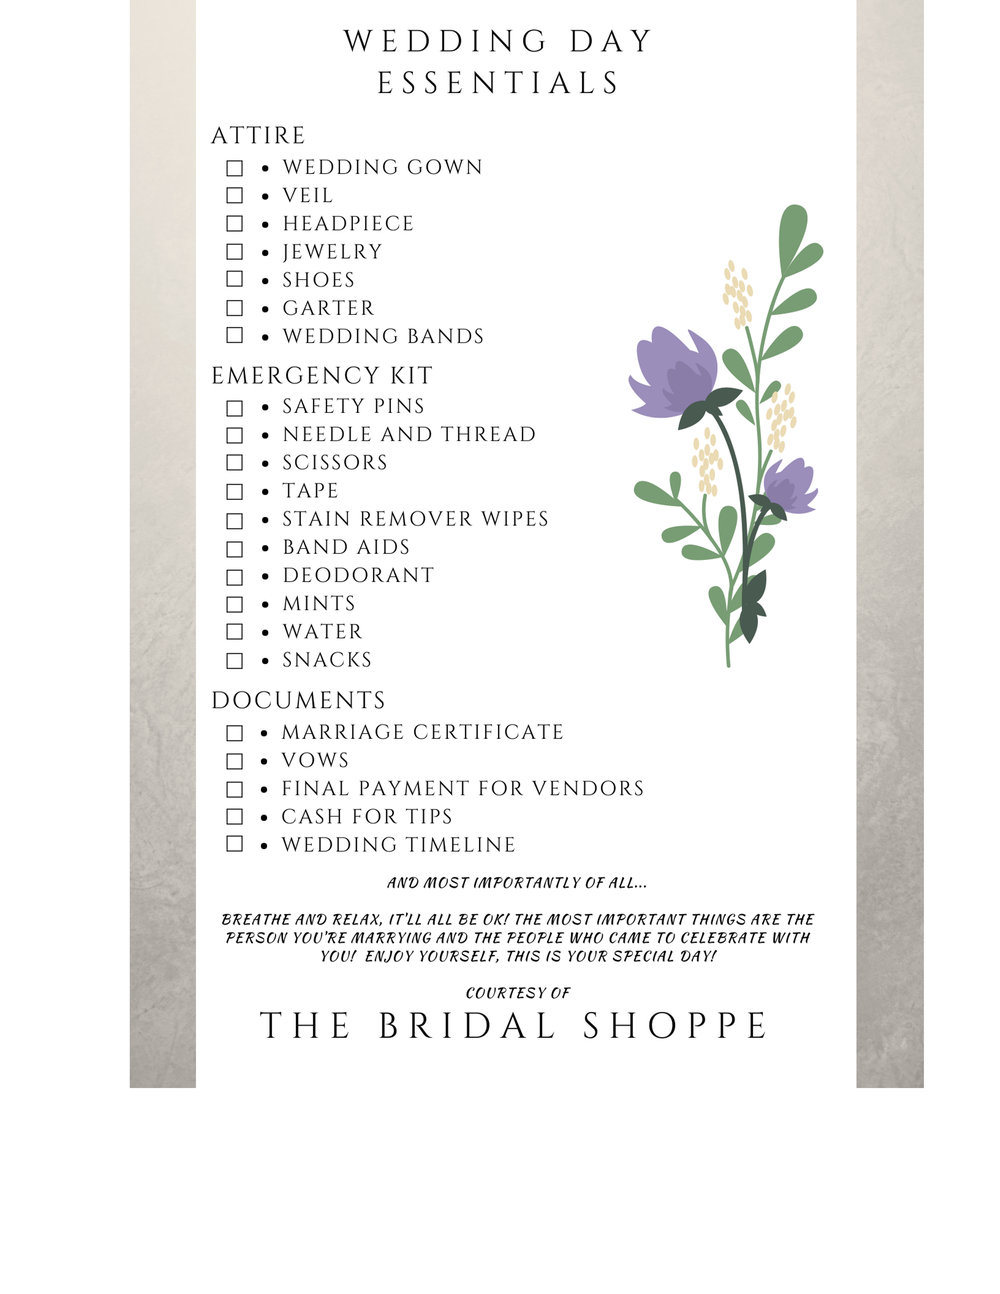 Wedding Day Checklist.jpg